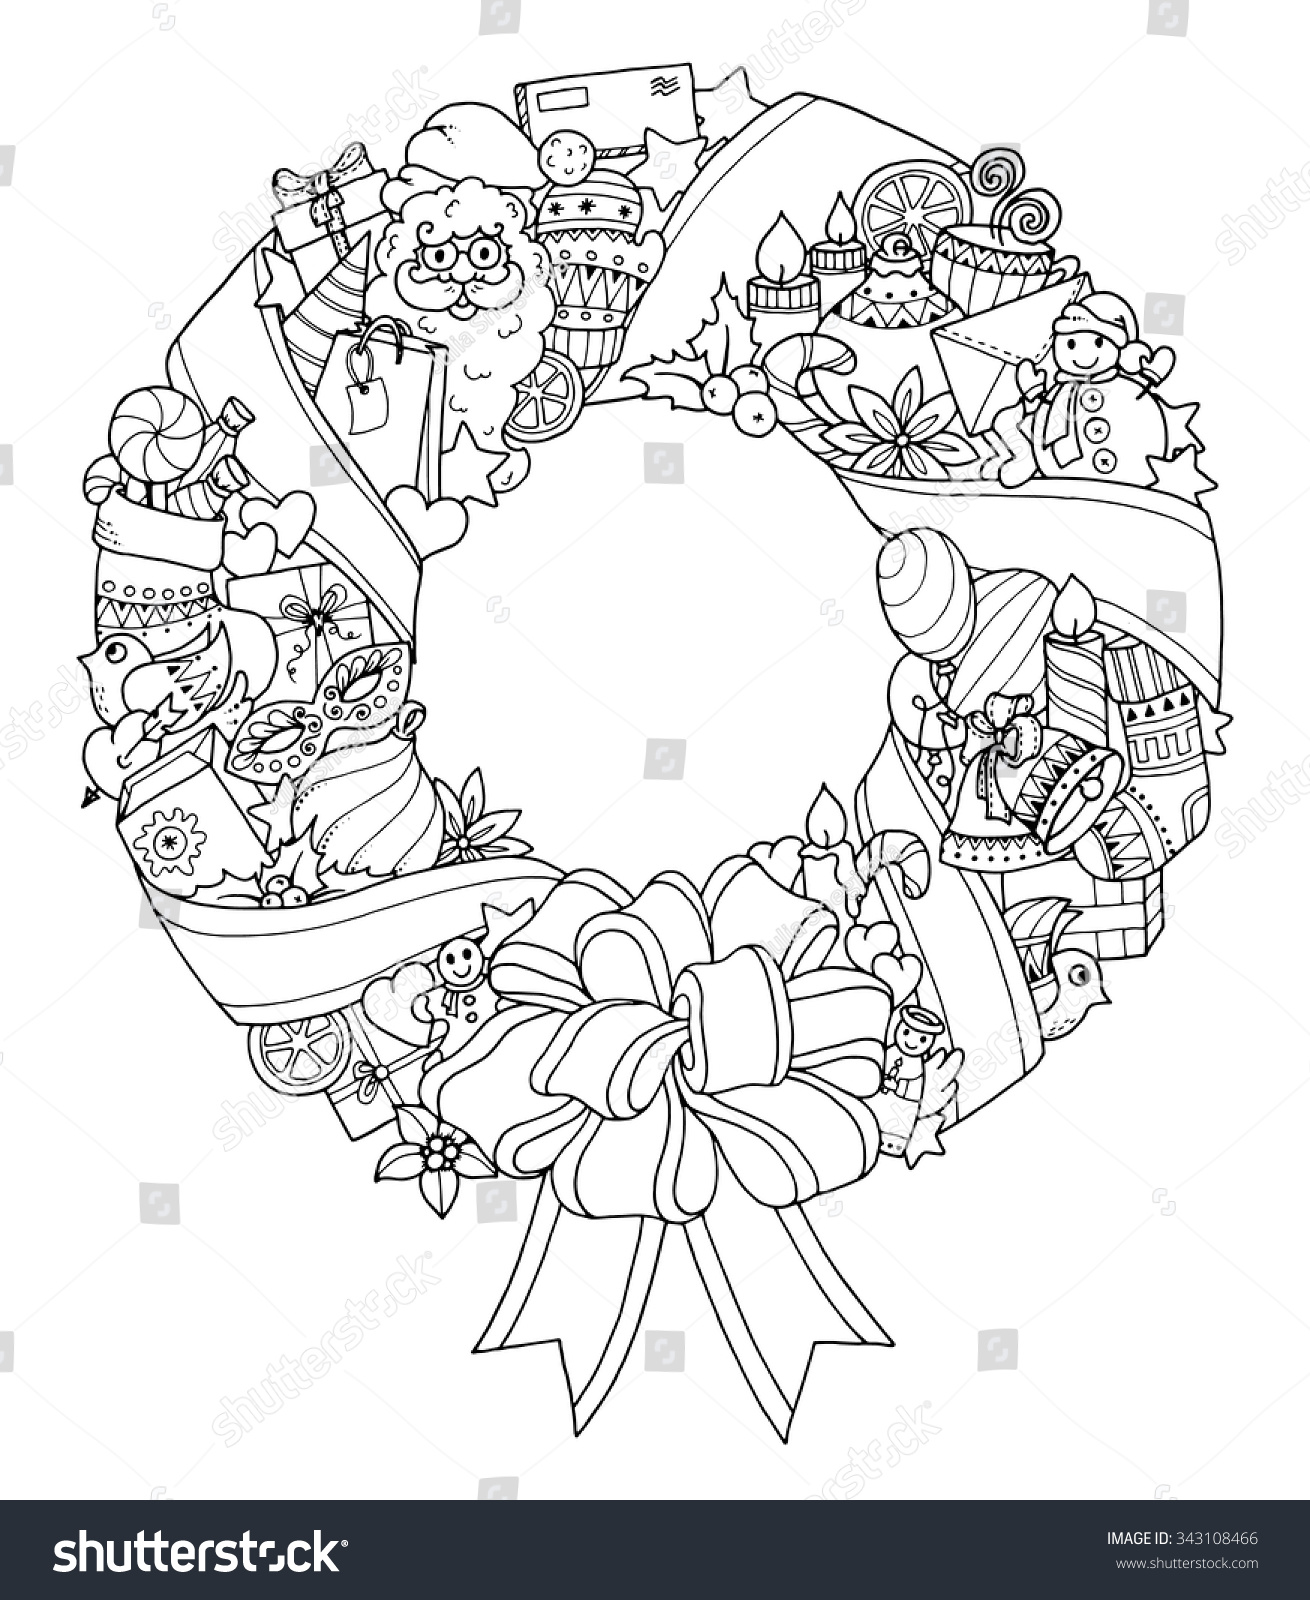 Christmas wreath Doodle pattern with balloons bells sweets Christmas socks gifts mittens envelope letter tree stars candle bird snowman ball bow heart and Santa Claus